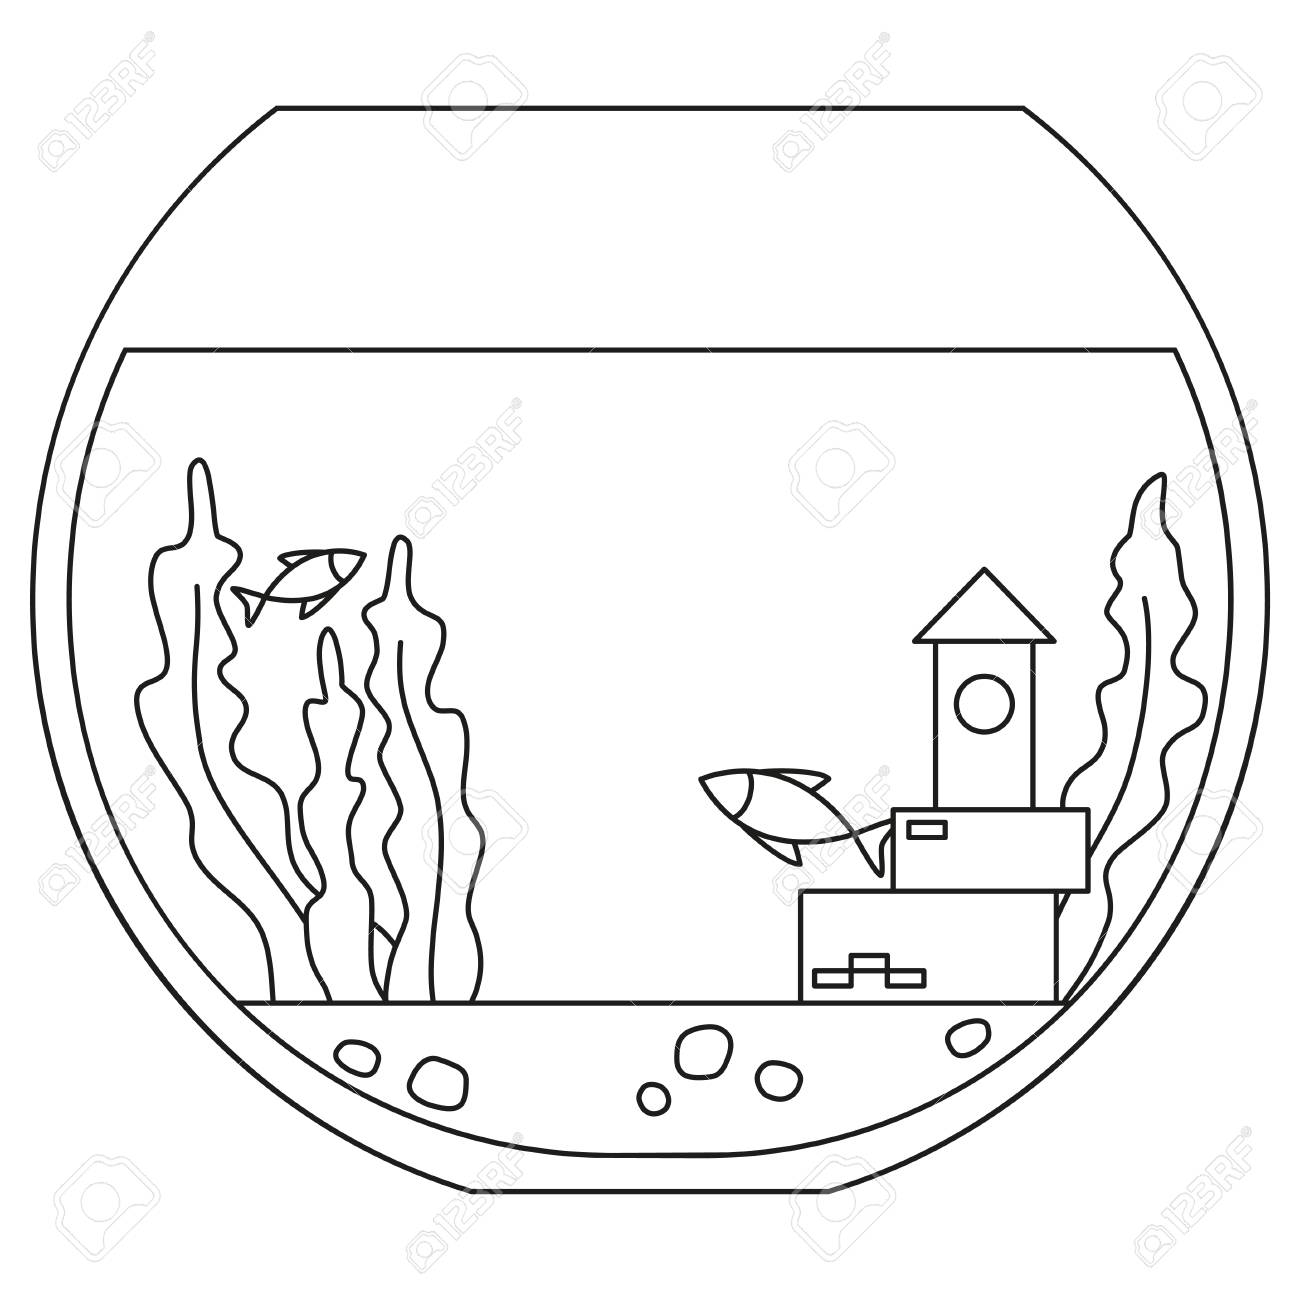 Line Art Black And White Round Fish Aquarium. Coloring Page For ...